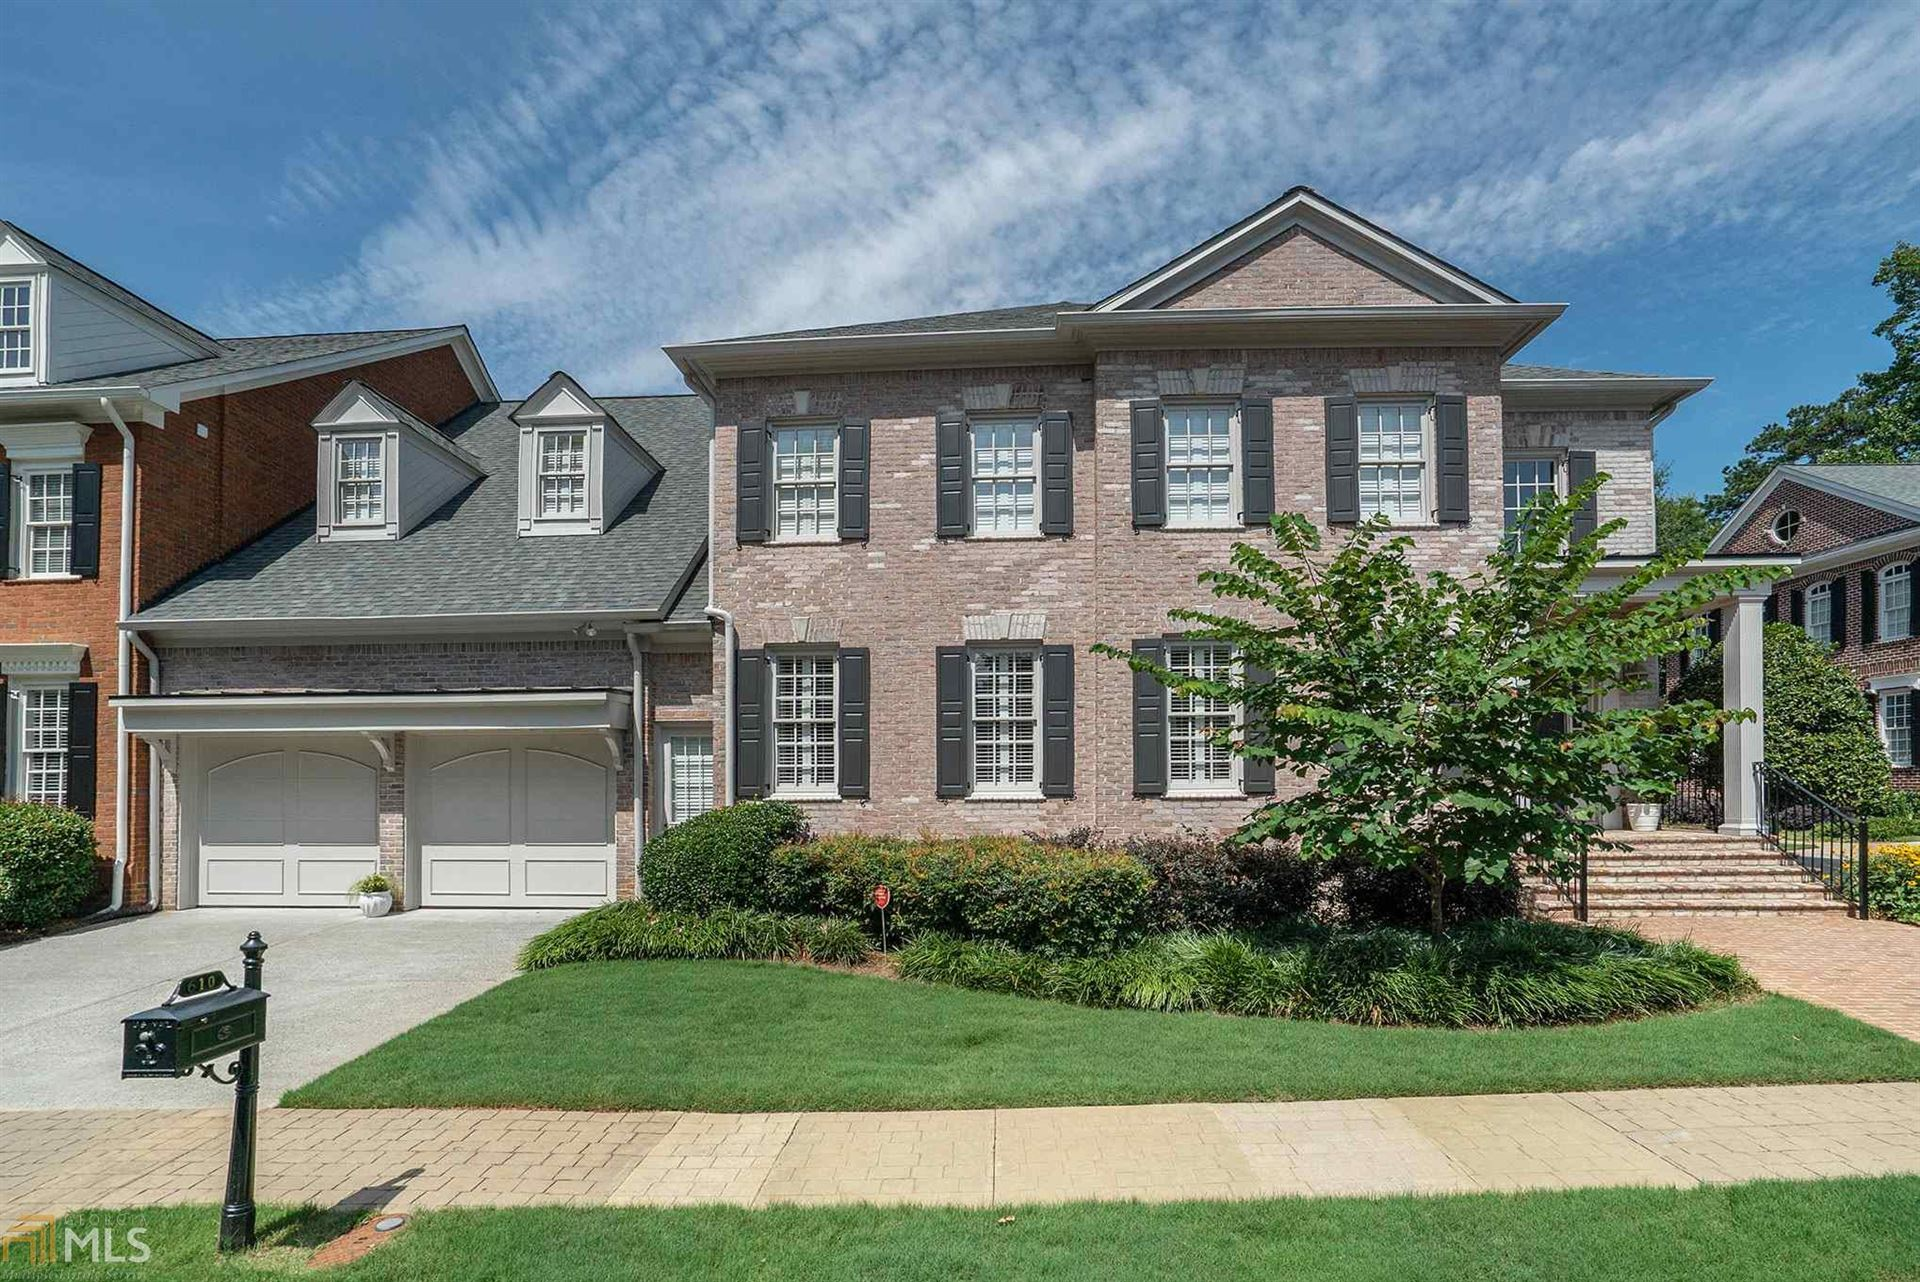 610 Enclave Cir, Atlanta, GA 30342 - MLS#: 8741556